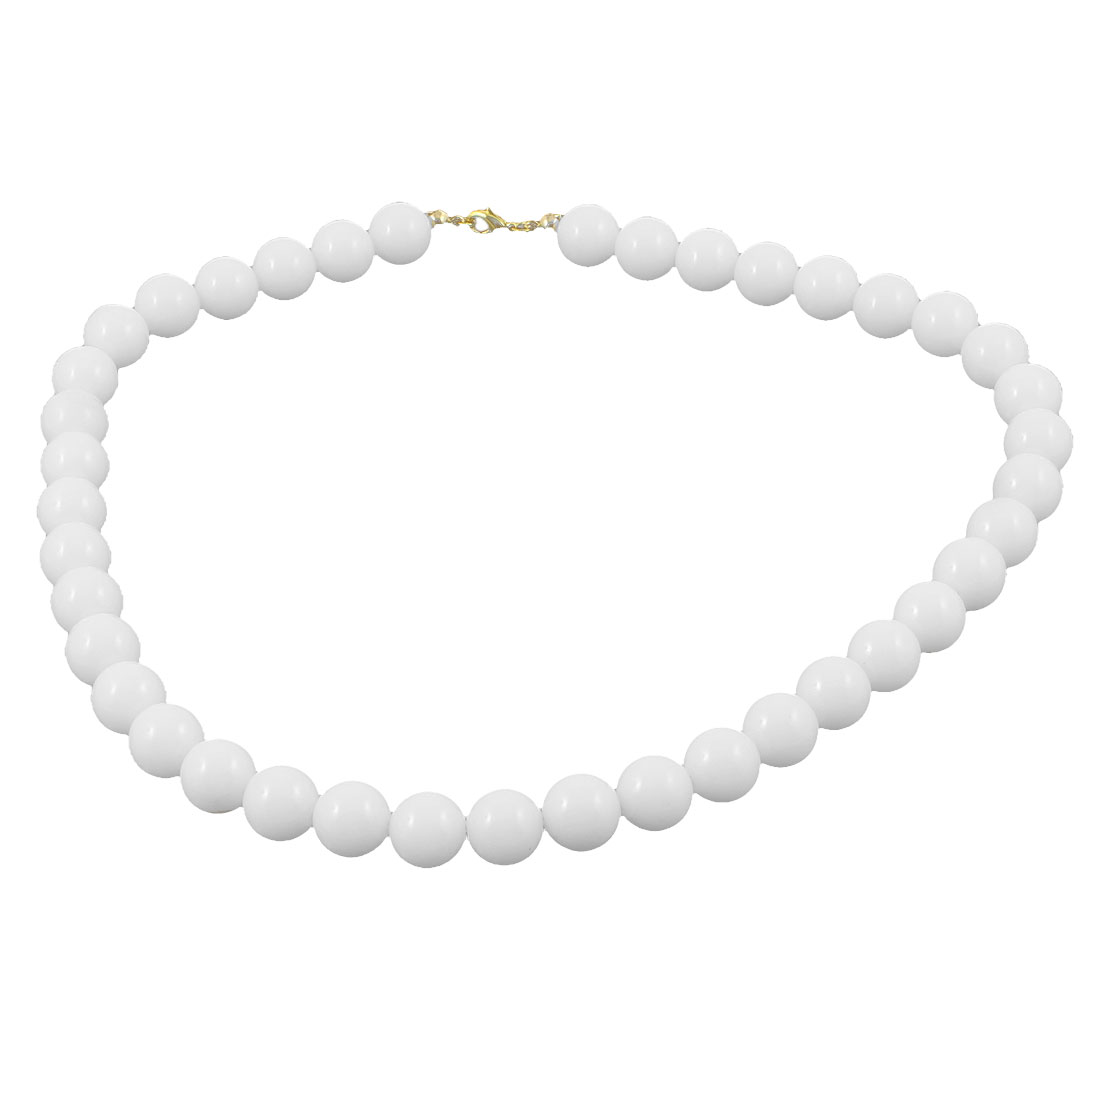 Lady White Imitation Pearl Beads Linked Lobster Clasp Princess Necklace Jewelry